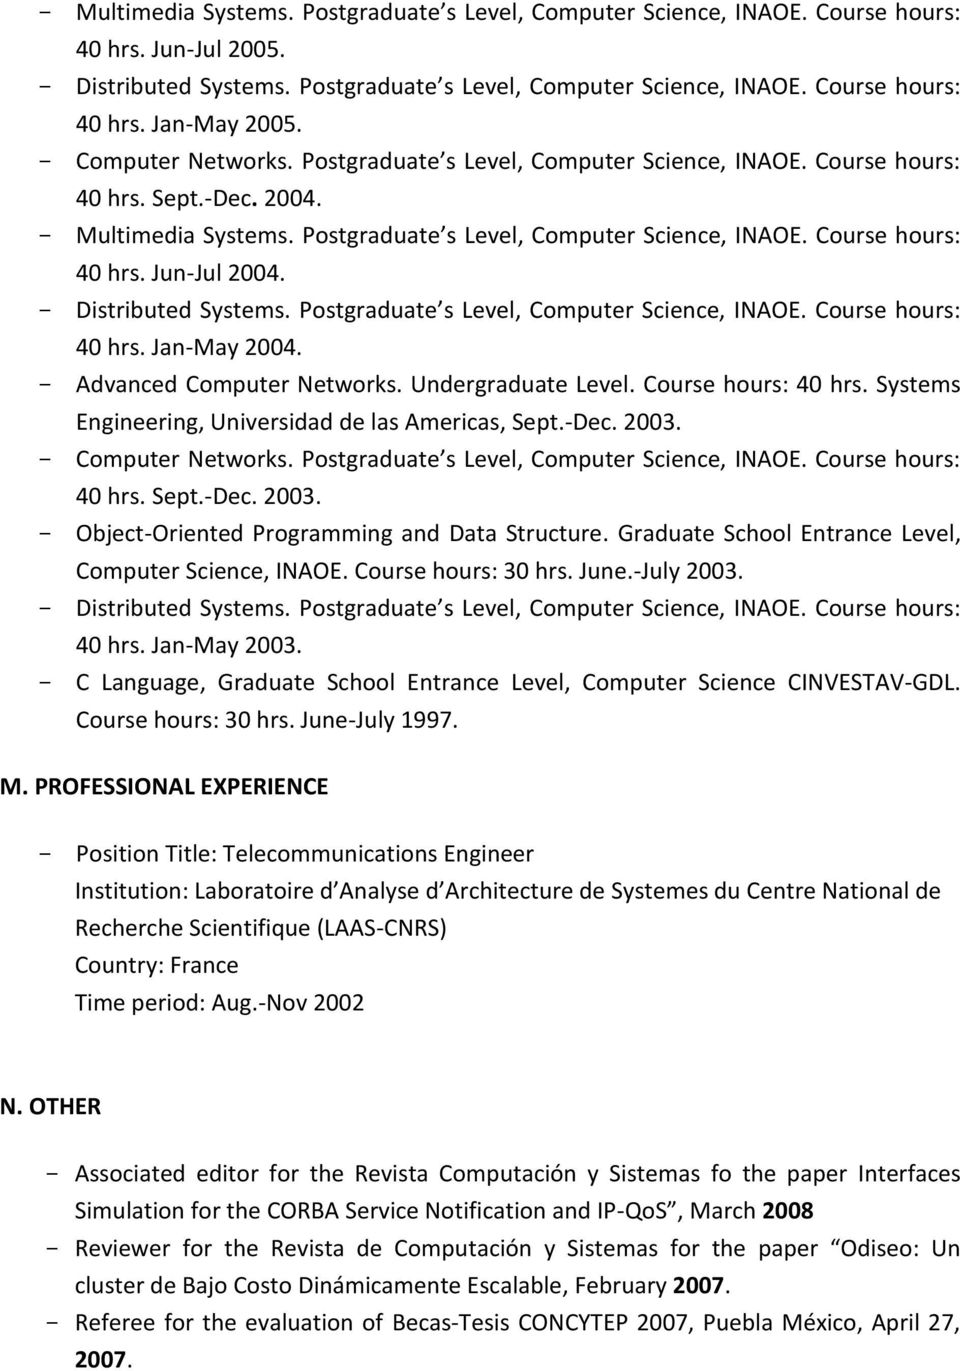 Distributed Systems. Pstgraduate s Level, Cmputer Science, INAOE. Curse hurs: 40 hrs. Jan-May 2004. Advanced Cmputer Netwrks. Undergraduate Level. Curse hurs: 40 hrs. Systems Engineering, Universidad de las Americas, Sept.